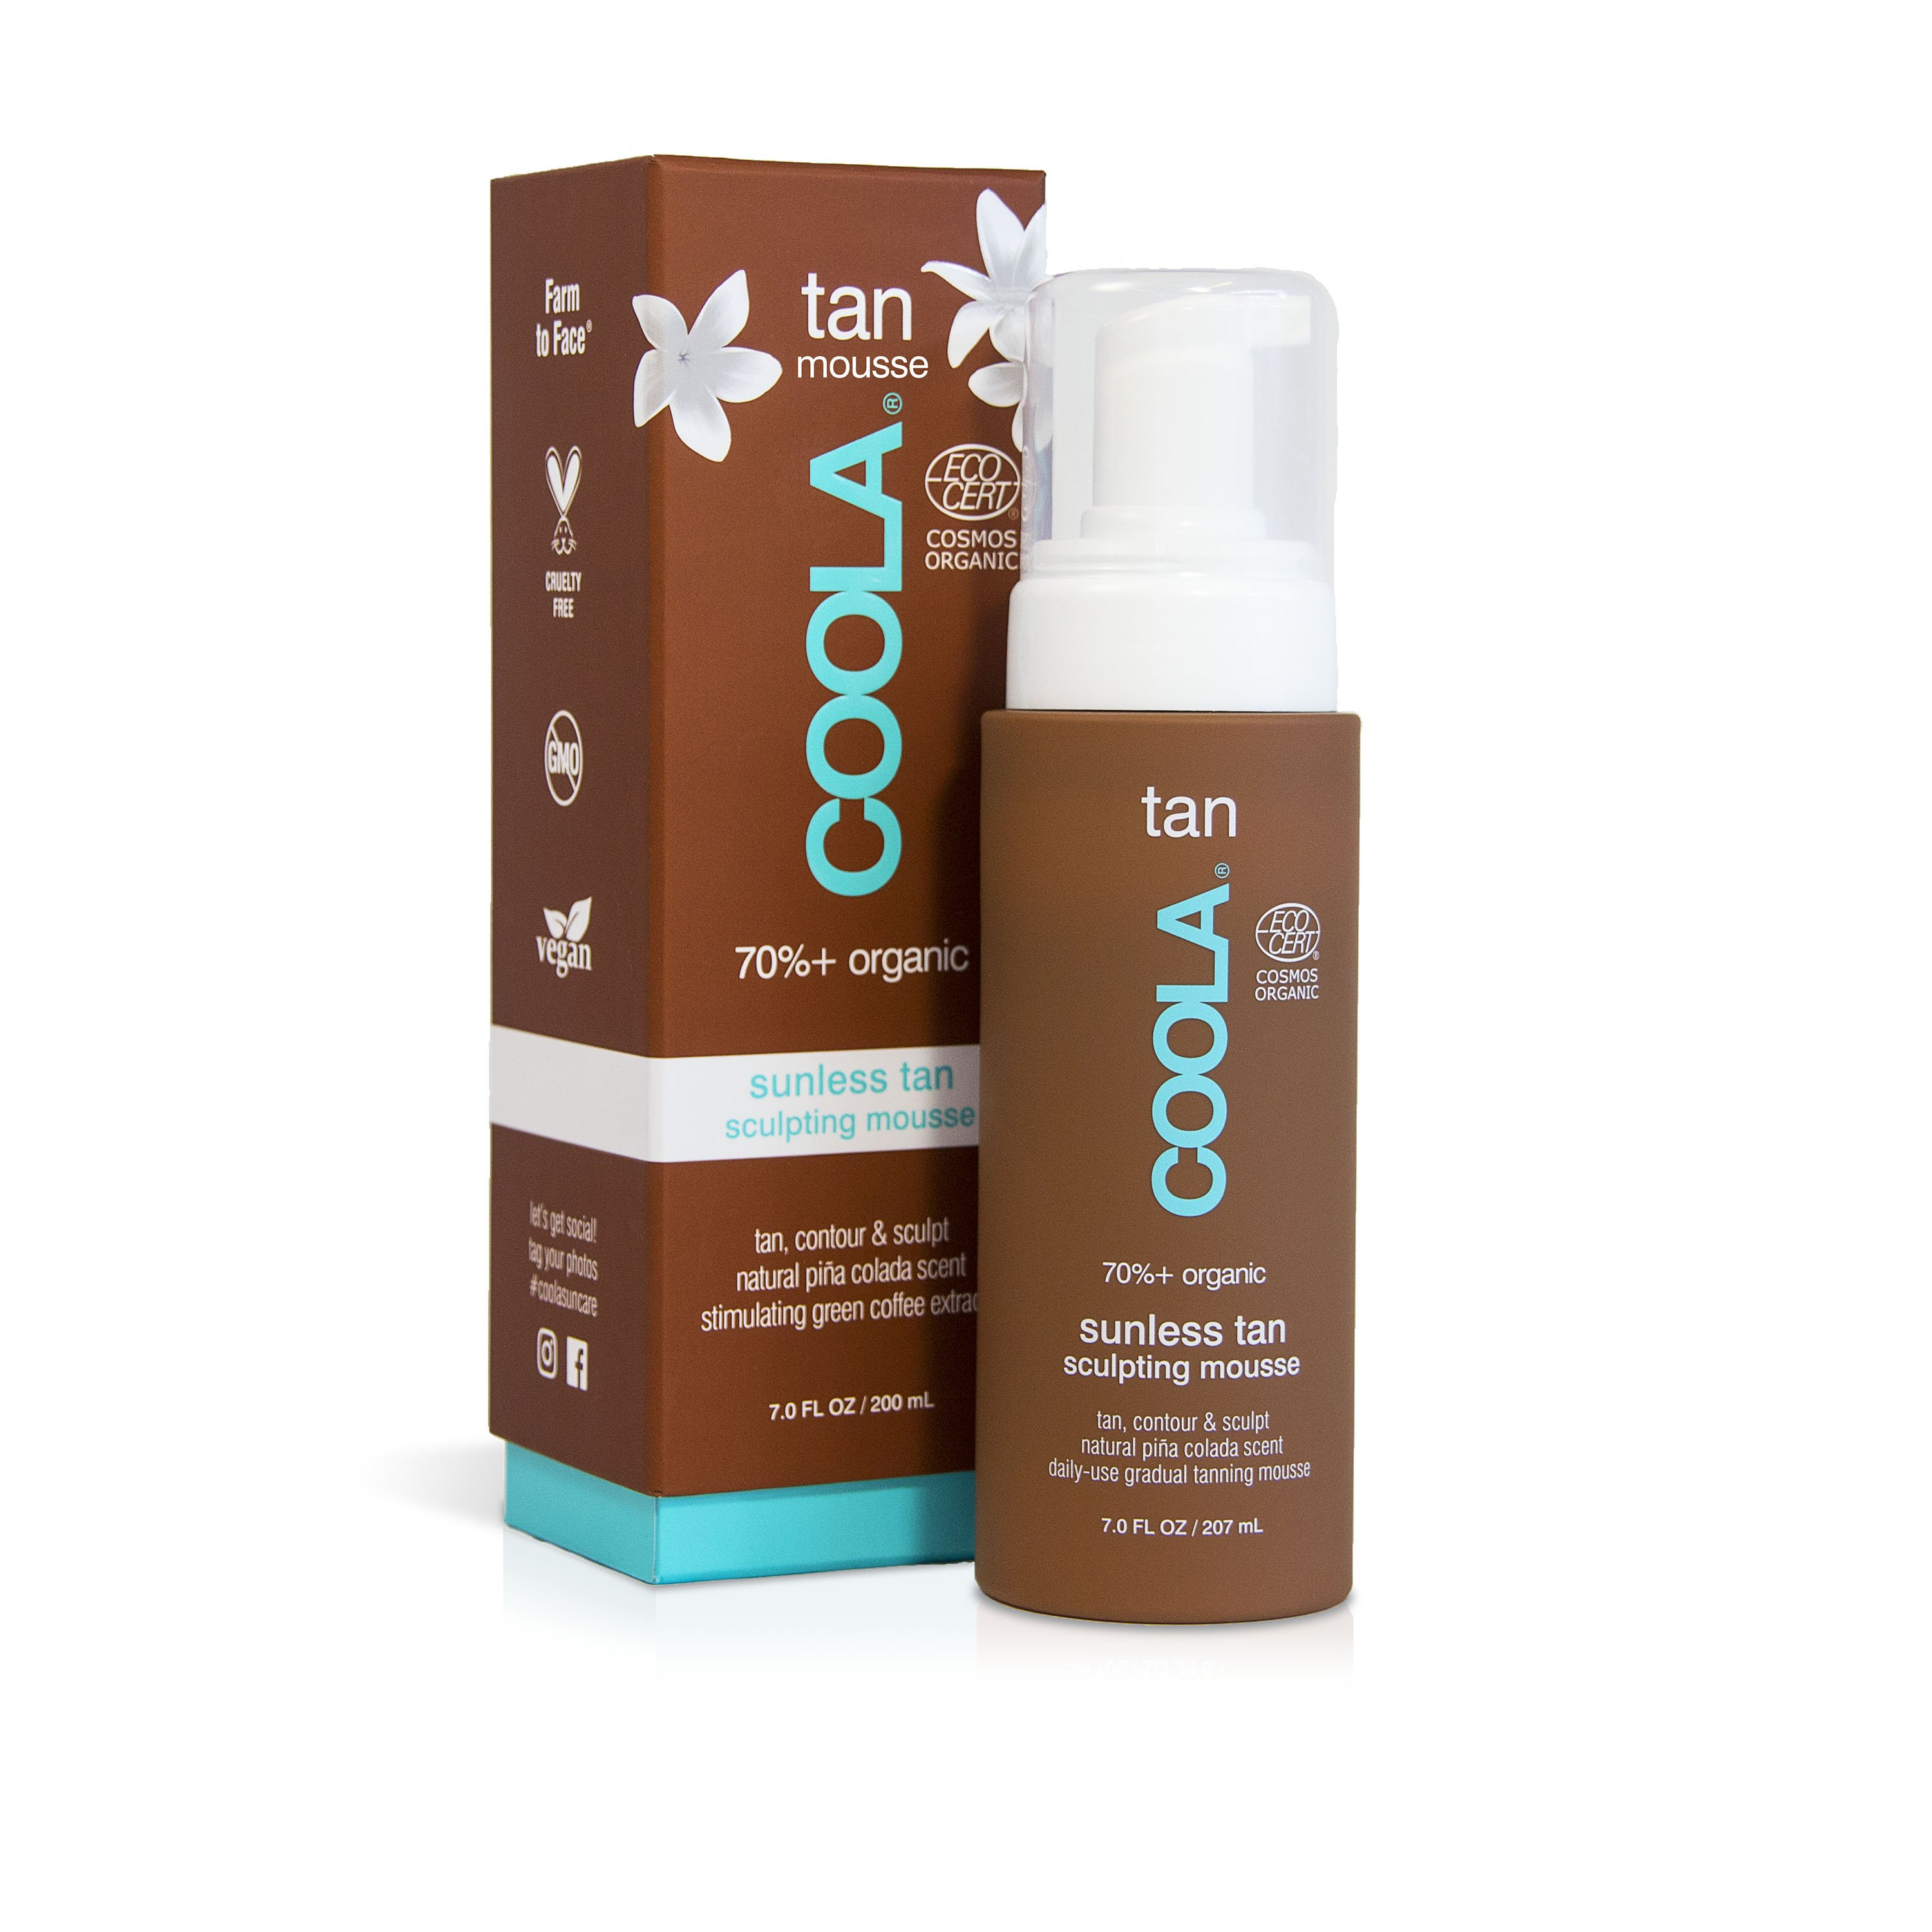 COOLA Organic Sunless Tan Sculpting Mousse